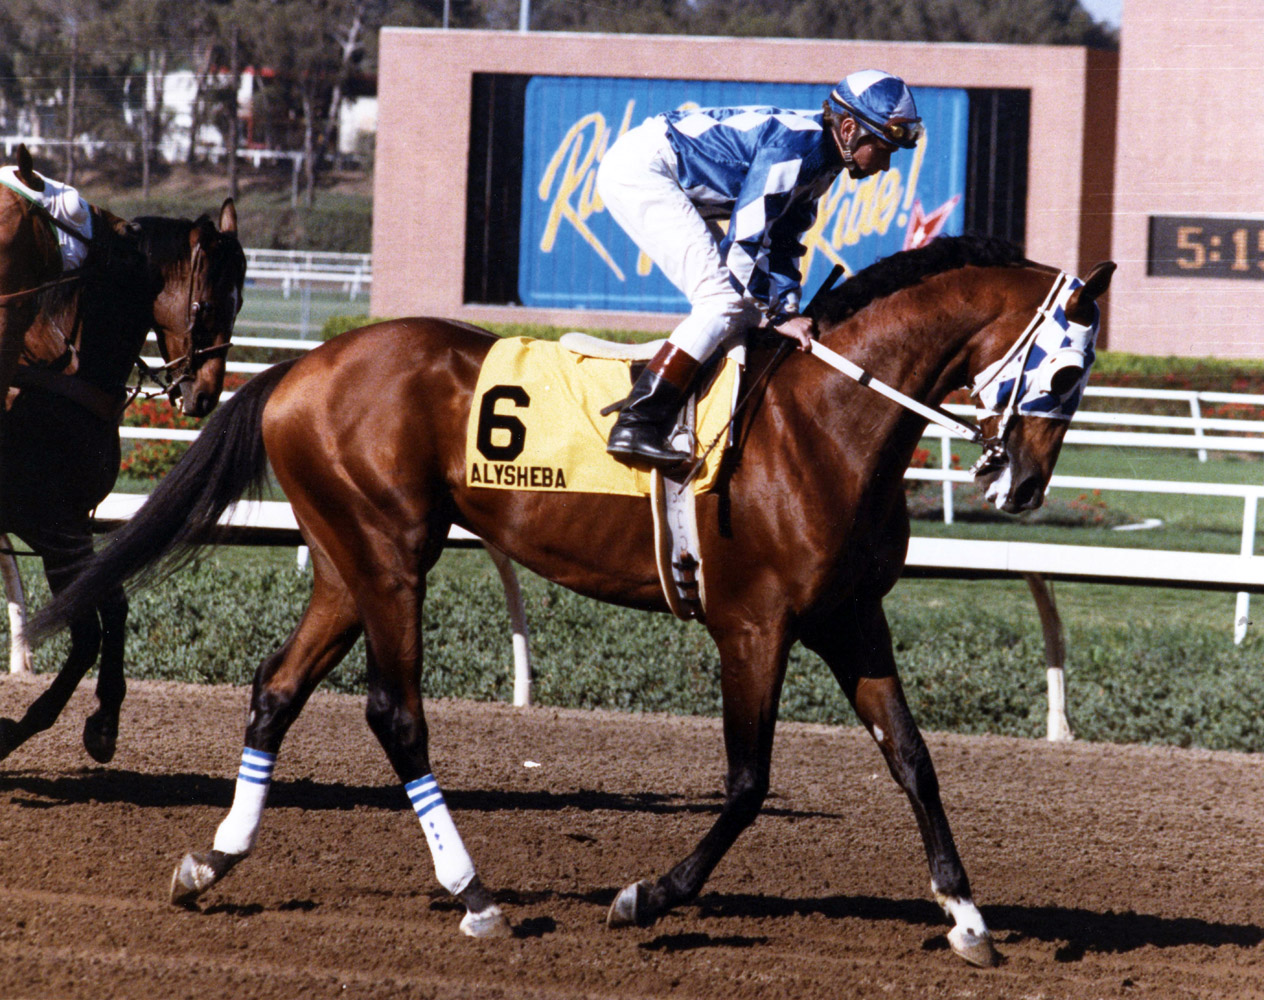 Alysheba with Chris McCarron up (Dan Johnson/Museum Collection)